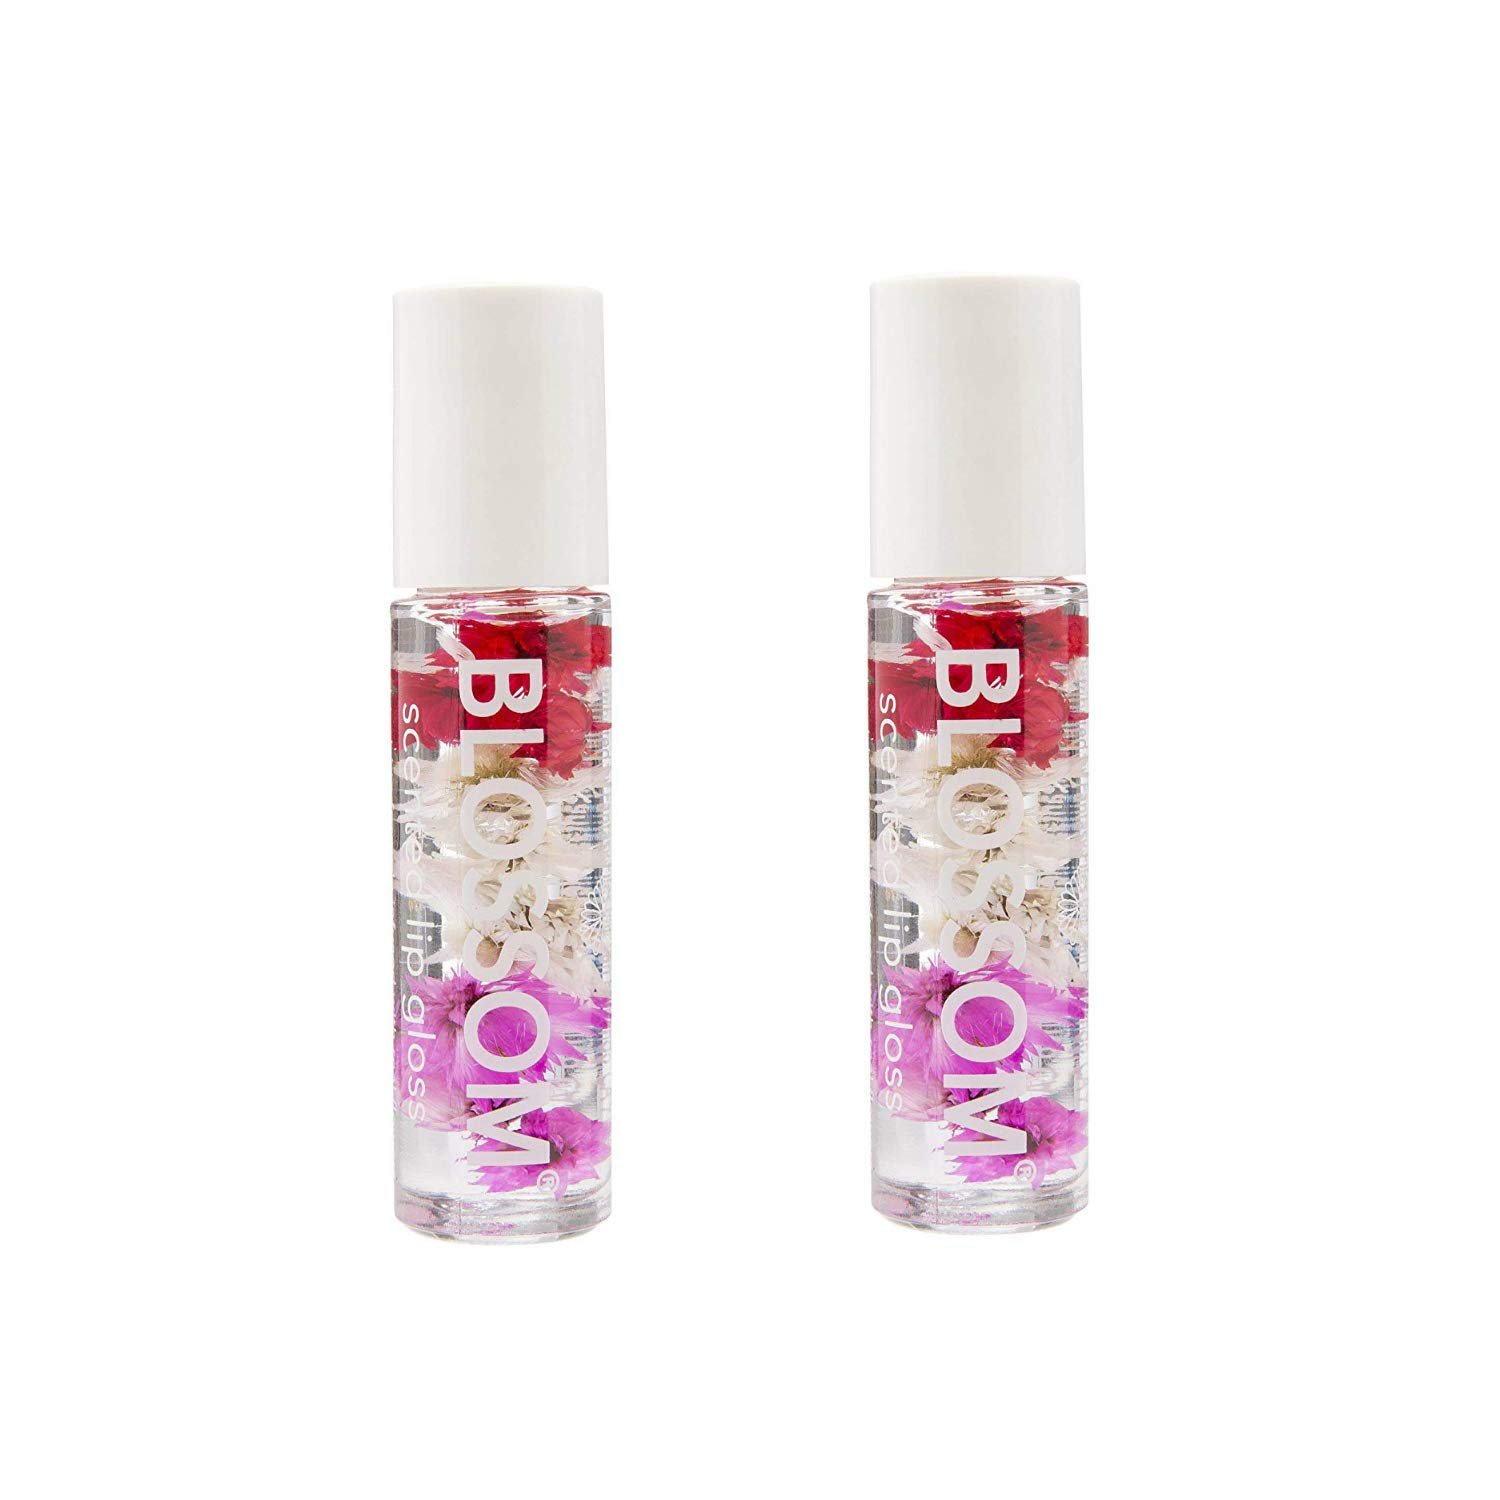 Blossom Roll On Lip Gloss - Strawberry (2-Pack)